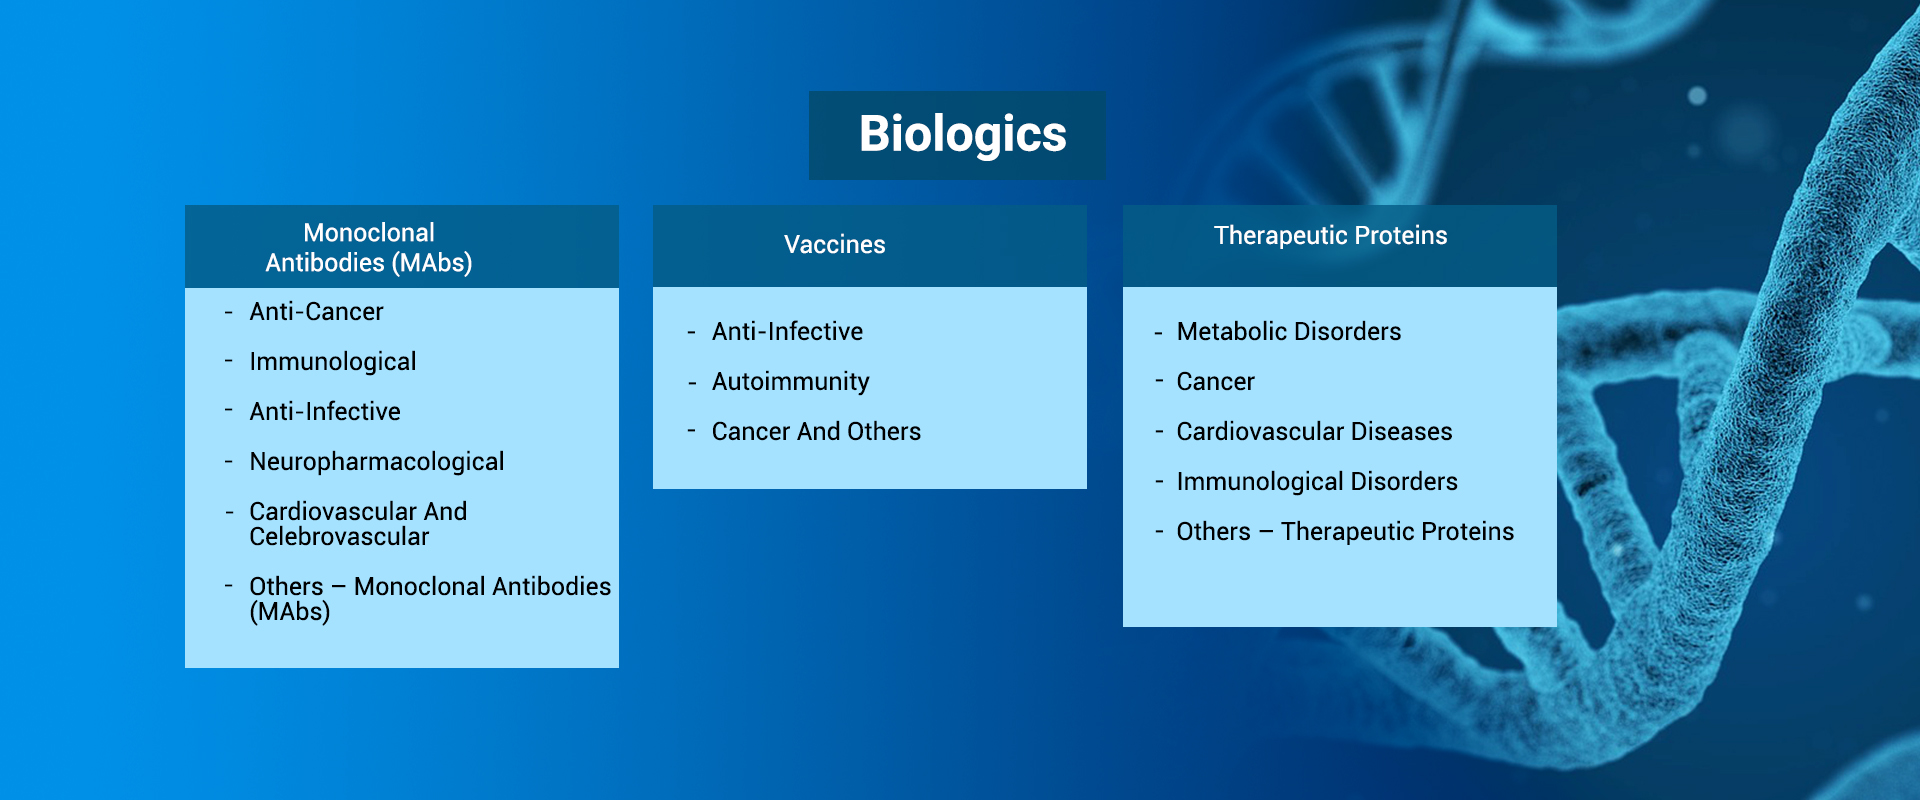 Biologics Coverage